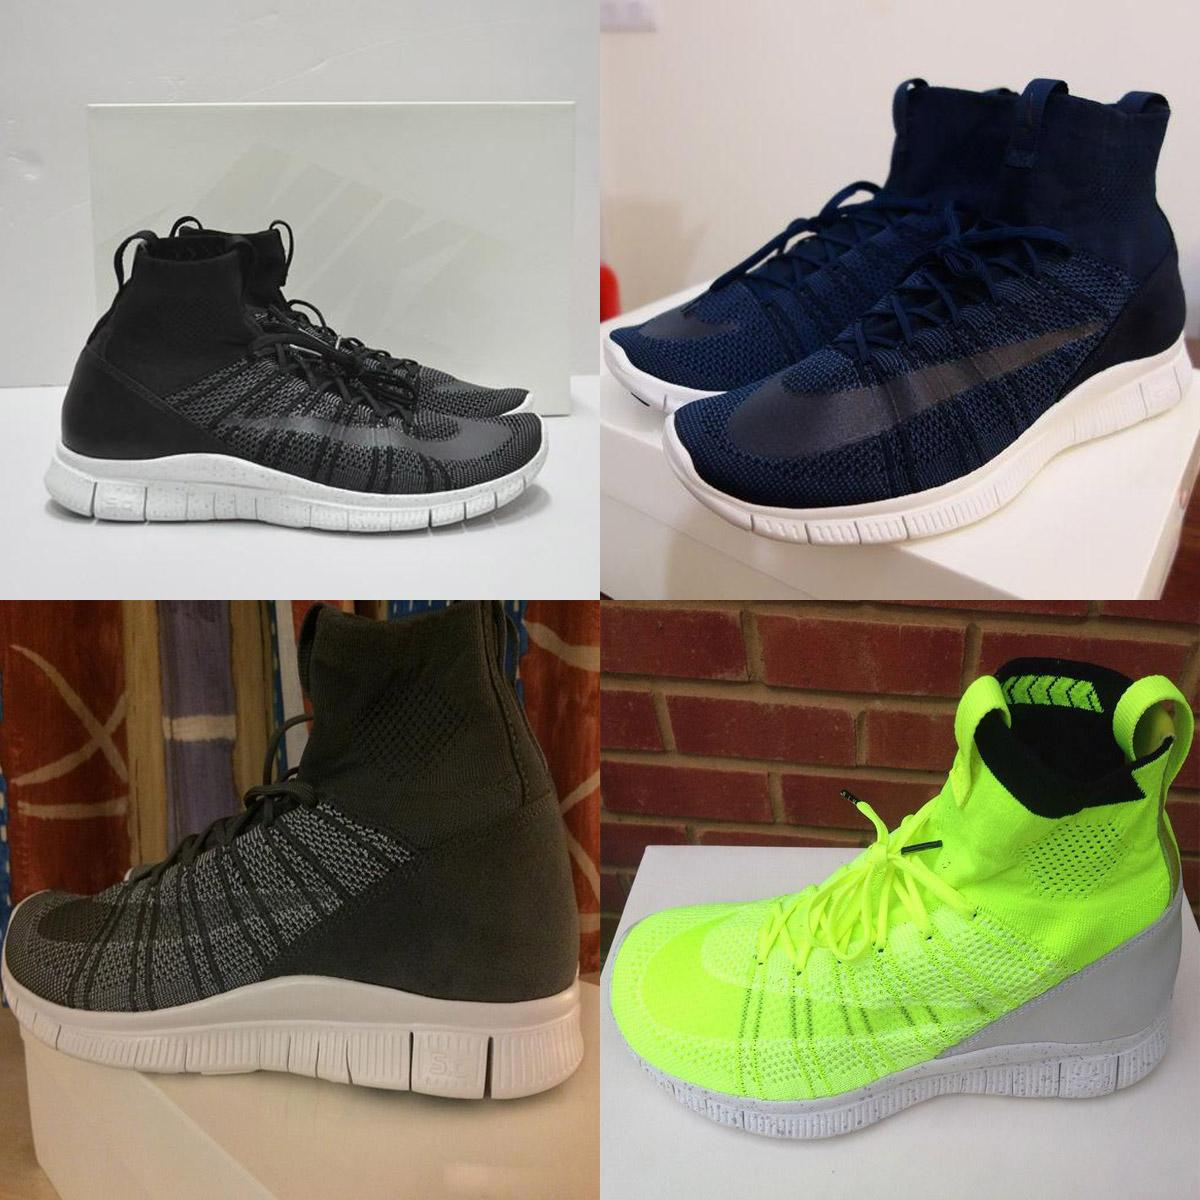 06ef78e54ecc Nike Free Mercurial Superfly Flyknit SP Dark Obsidian HTM Volt 5.0 Black  Dark Blue Grey Green Mens Running Shoes Boots Men Sneakers Trail Shoes  Shoes ...